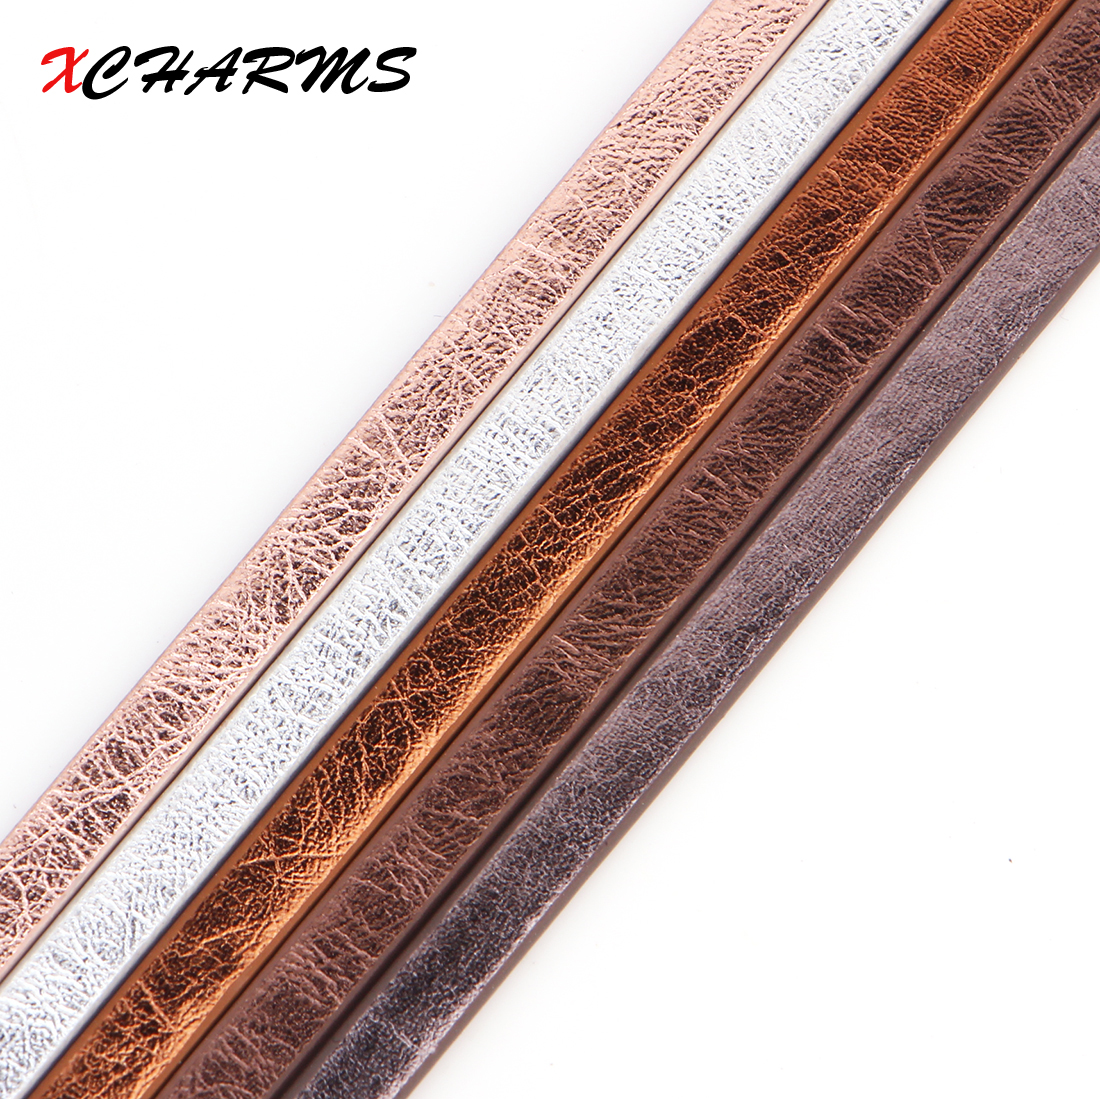 XCHARMS 5MM Flat PU Leather Cord Matt Surface Rope Jewelry Findings Accessories Fashion Jewelry Making Materials